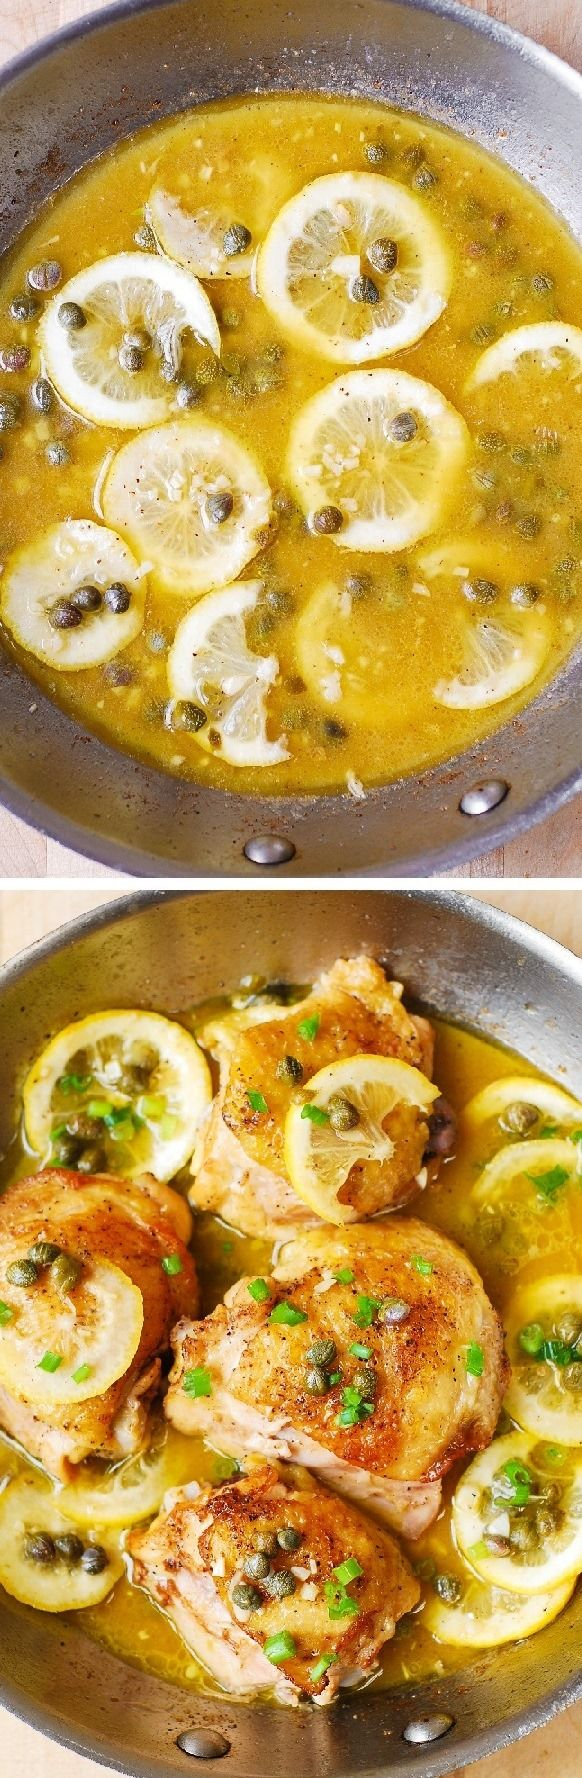 Pan-fried chicken thighs with garlic, lemon, and capers in a juicy chicken broth.